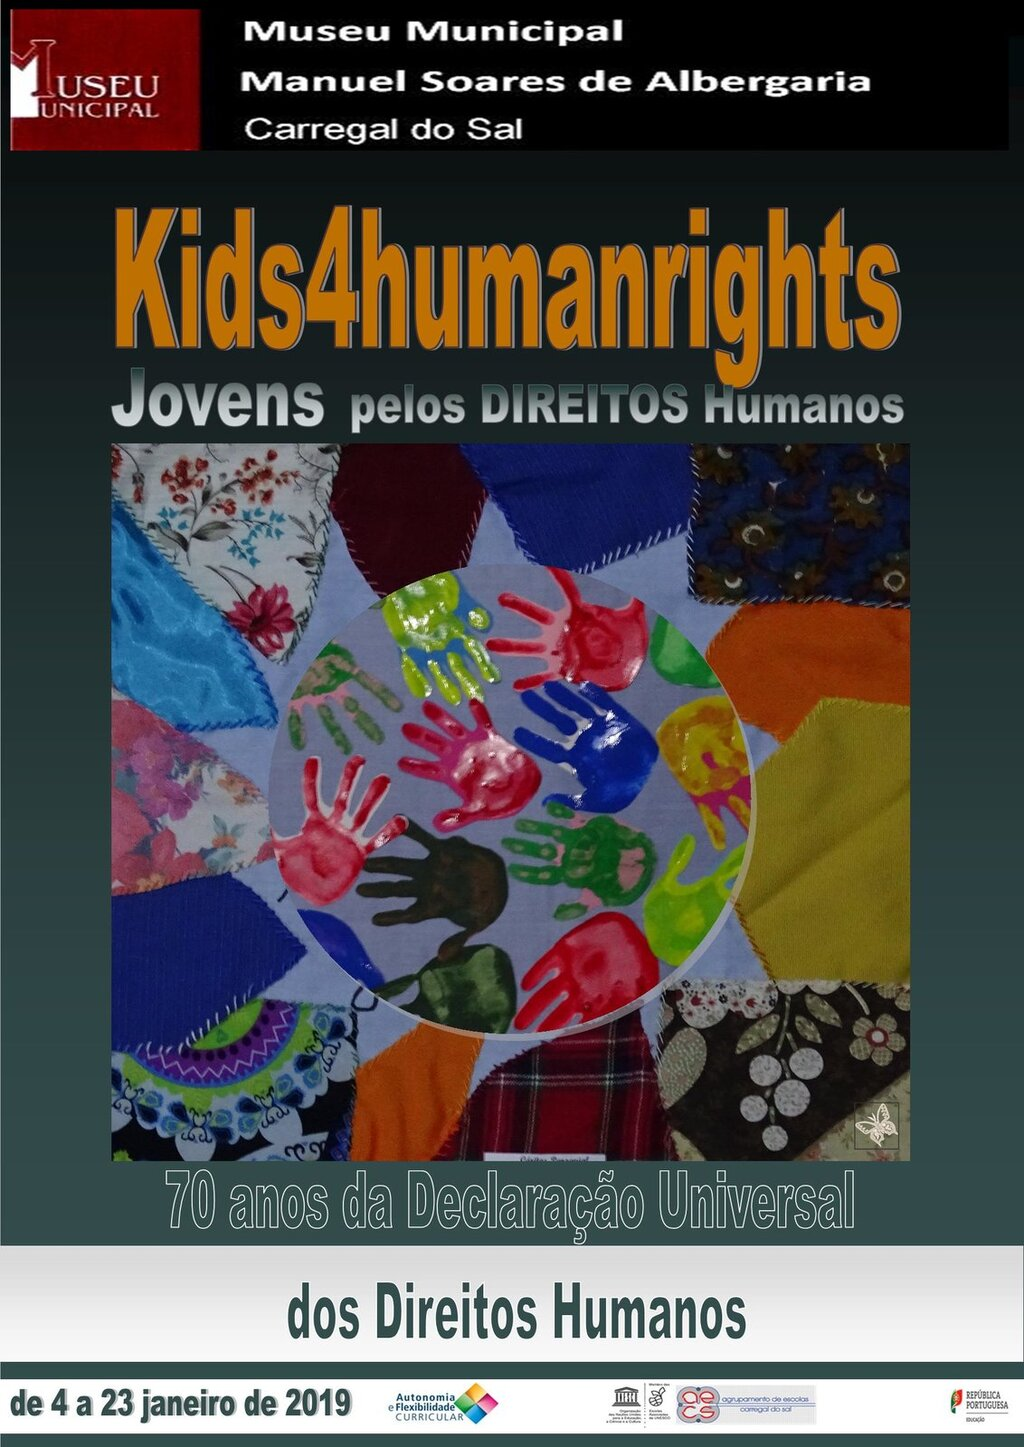 Kids4humanrights